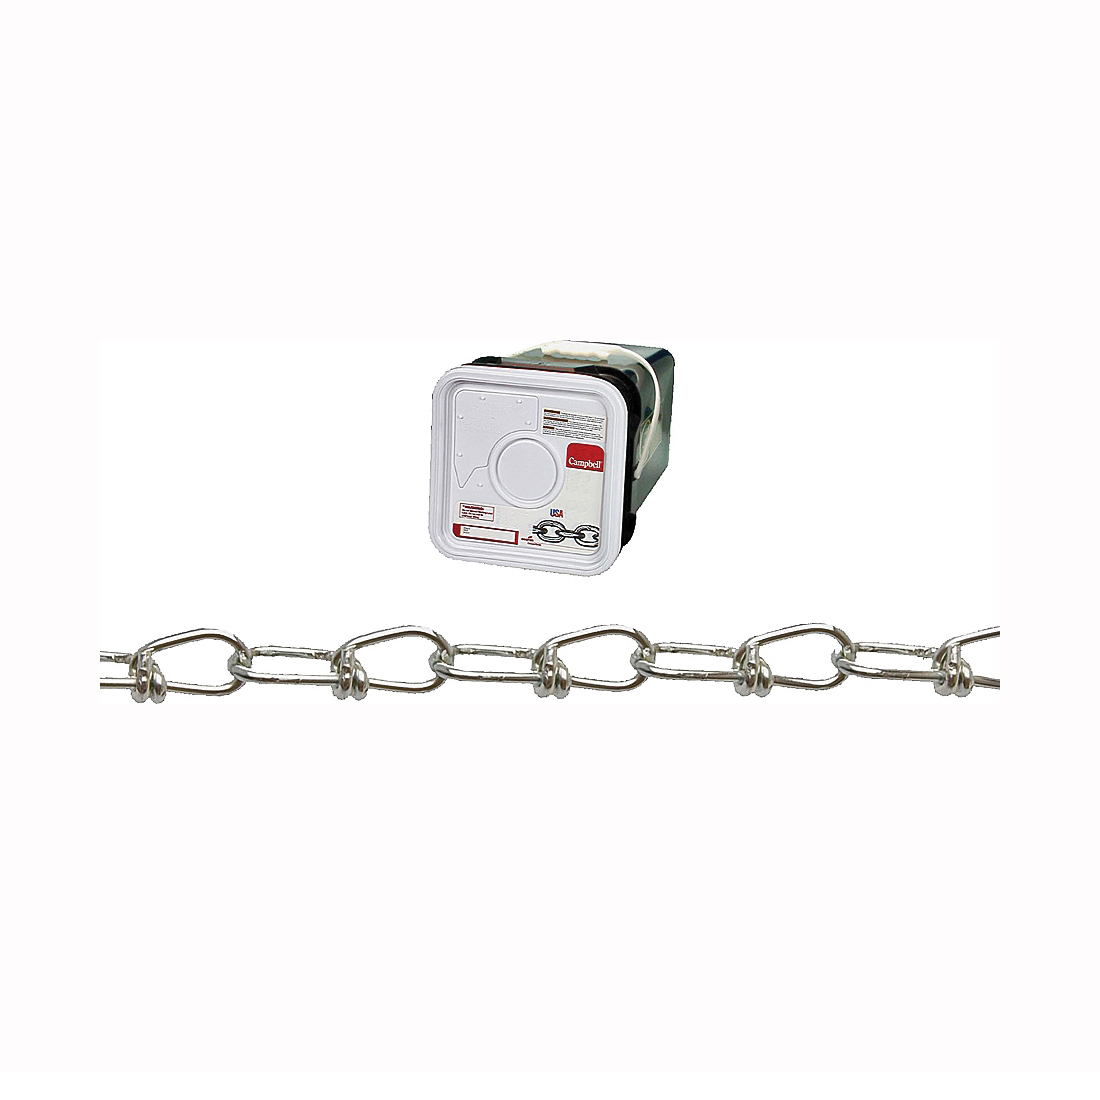 Picture of Campbell 0752426 Loop Chain, #2/0 Trade, 275 ft L, 255 lb Working Load, Low Carbon Steel, Zinc, Square Pail